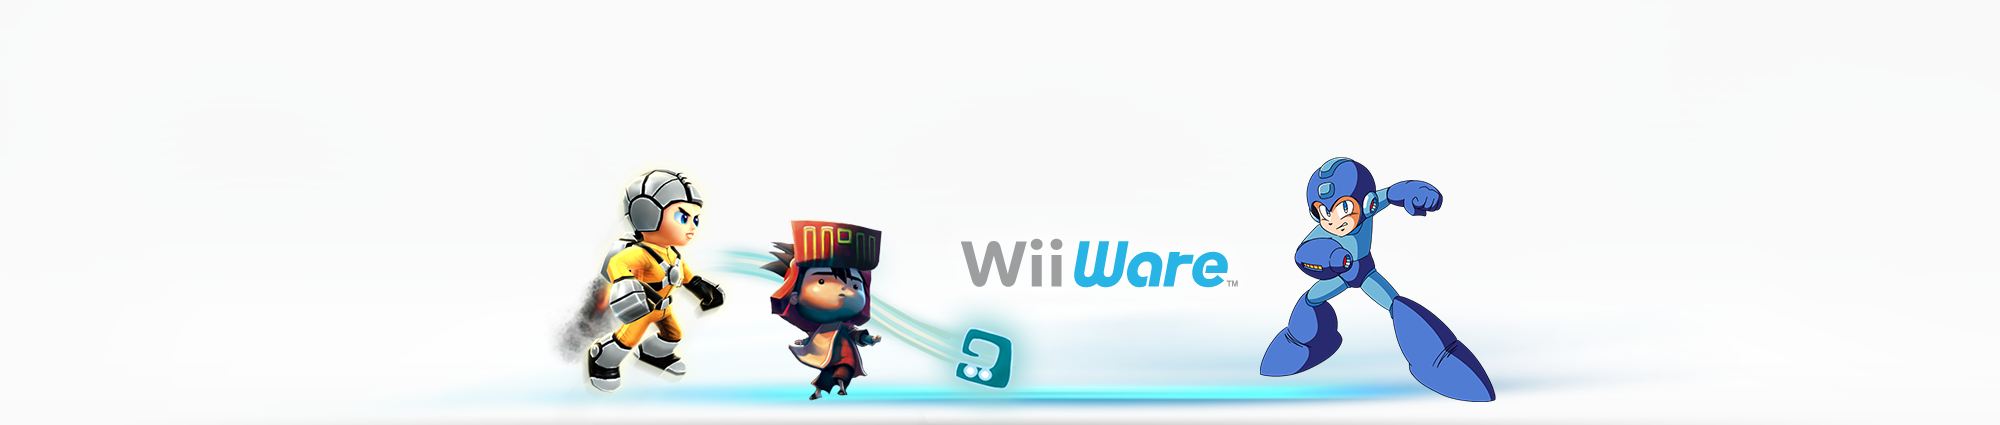 Download Games on Wii